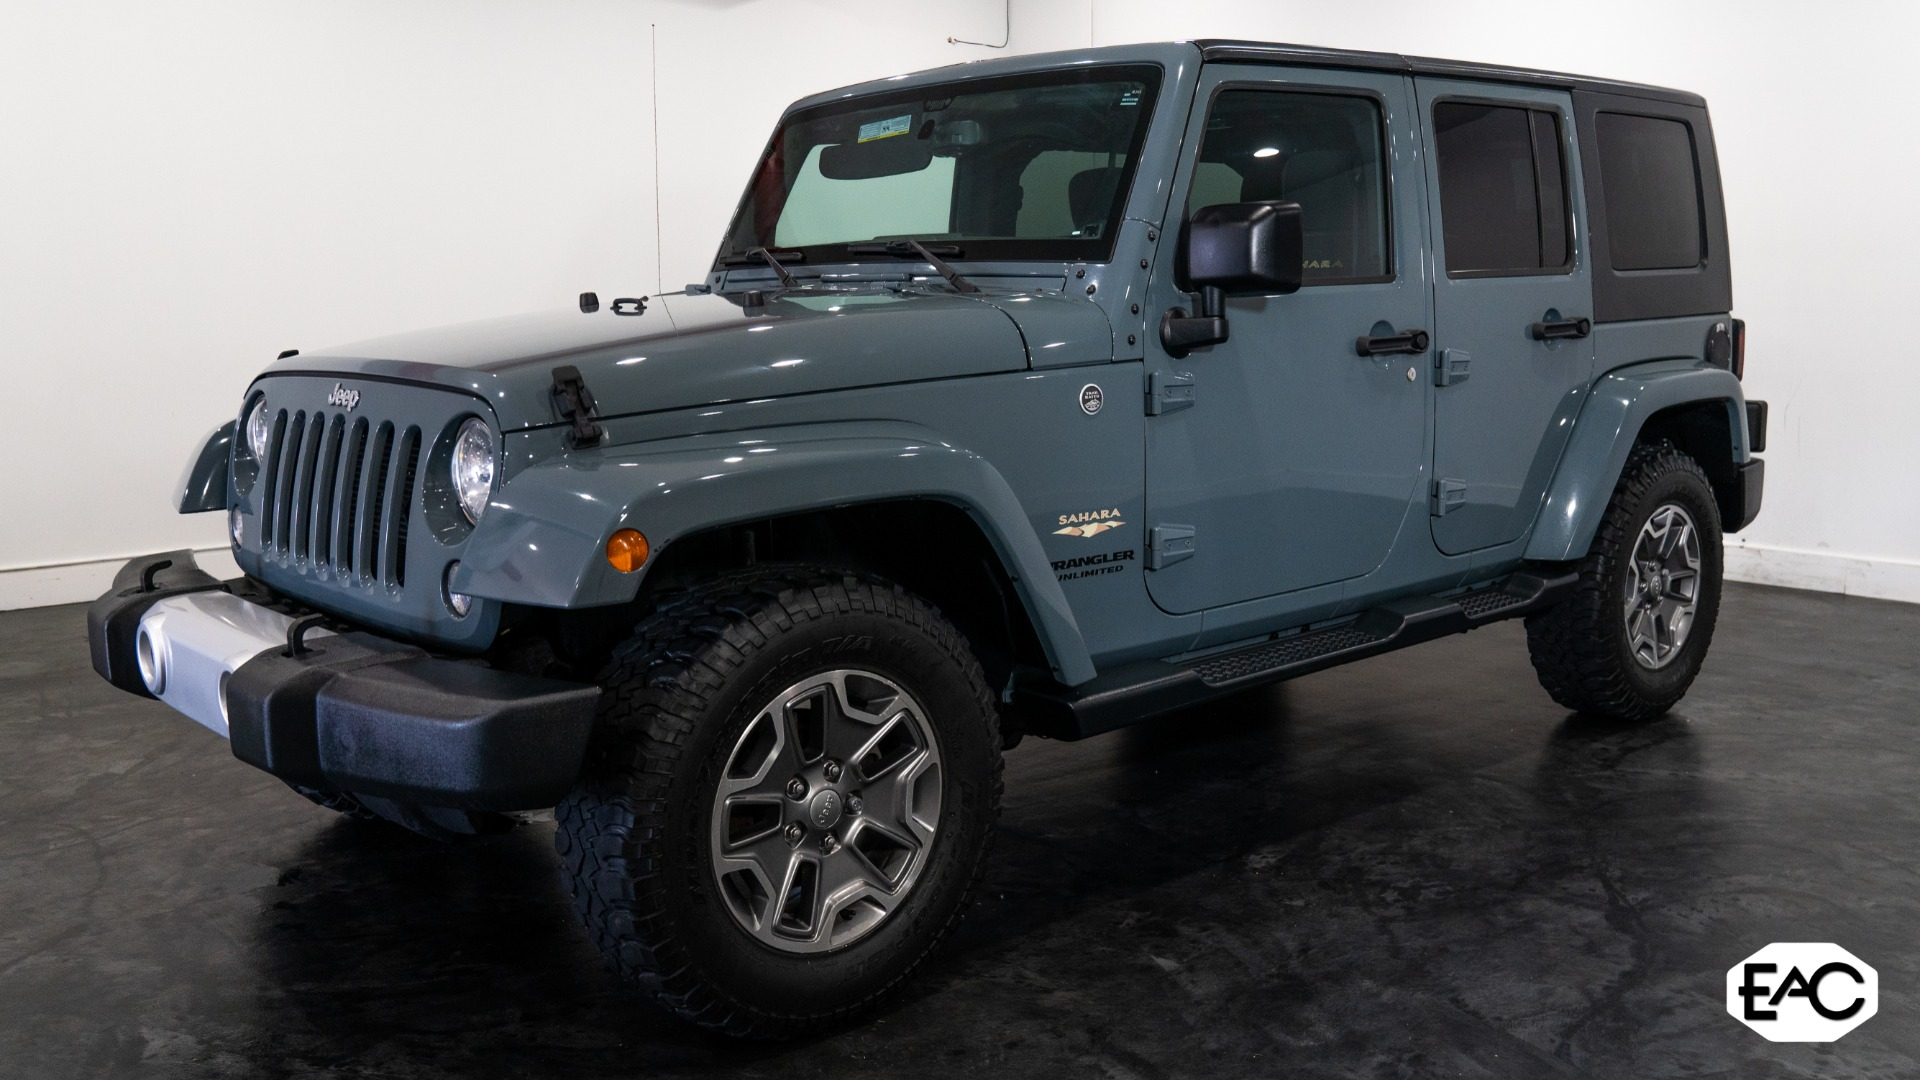 Used 2015 Jeep Wrangler Unlimited Sahara for sale Sold at Empire Auto Collection in Warren MI 48091 1